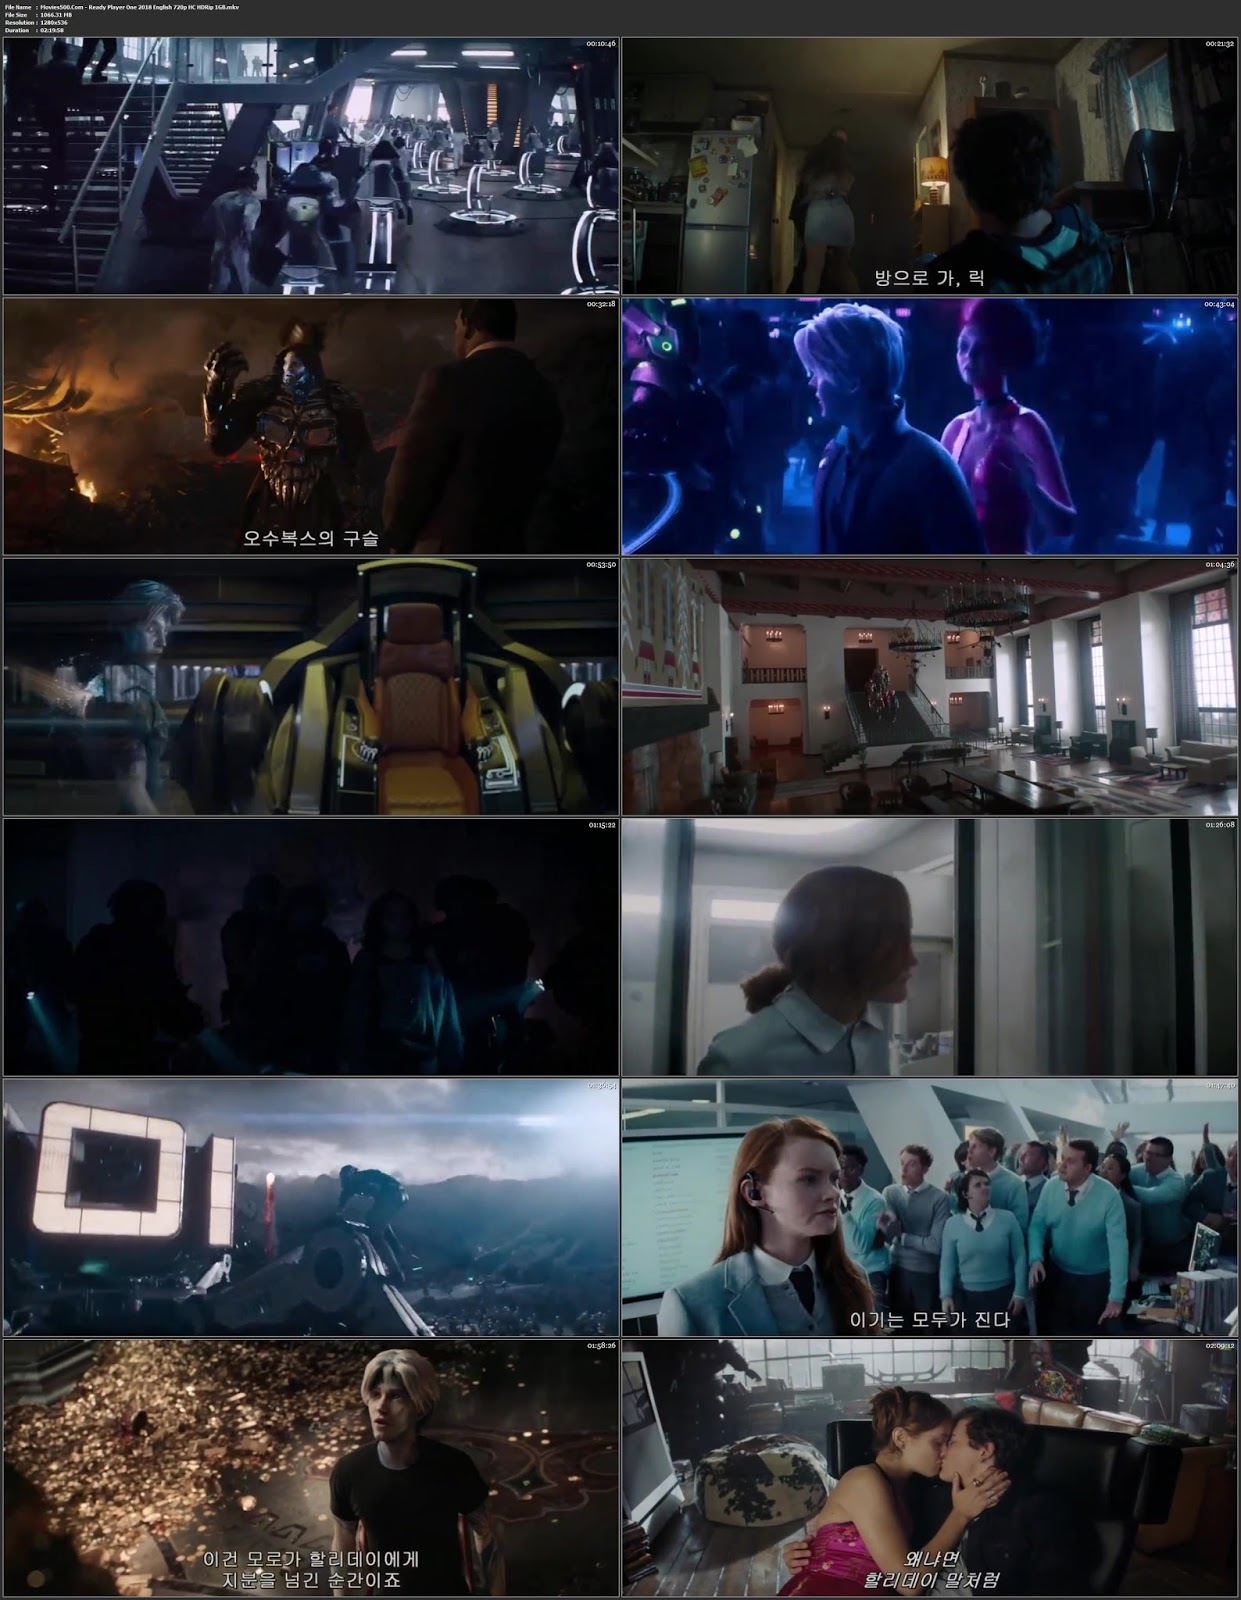 Ready Player One 2018 English Full Movie HC HDRip 720p 1GB at movies500.site